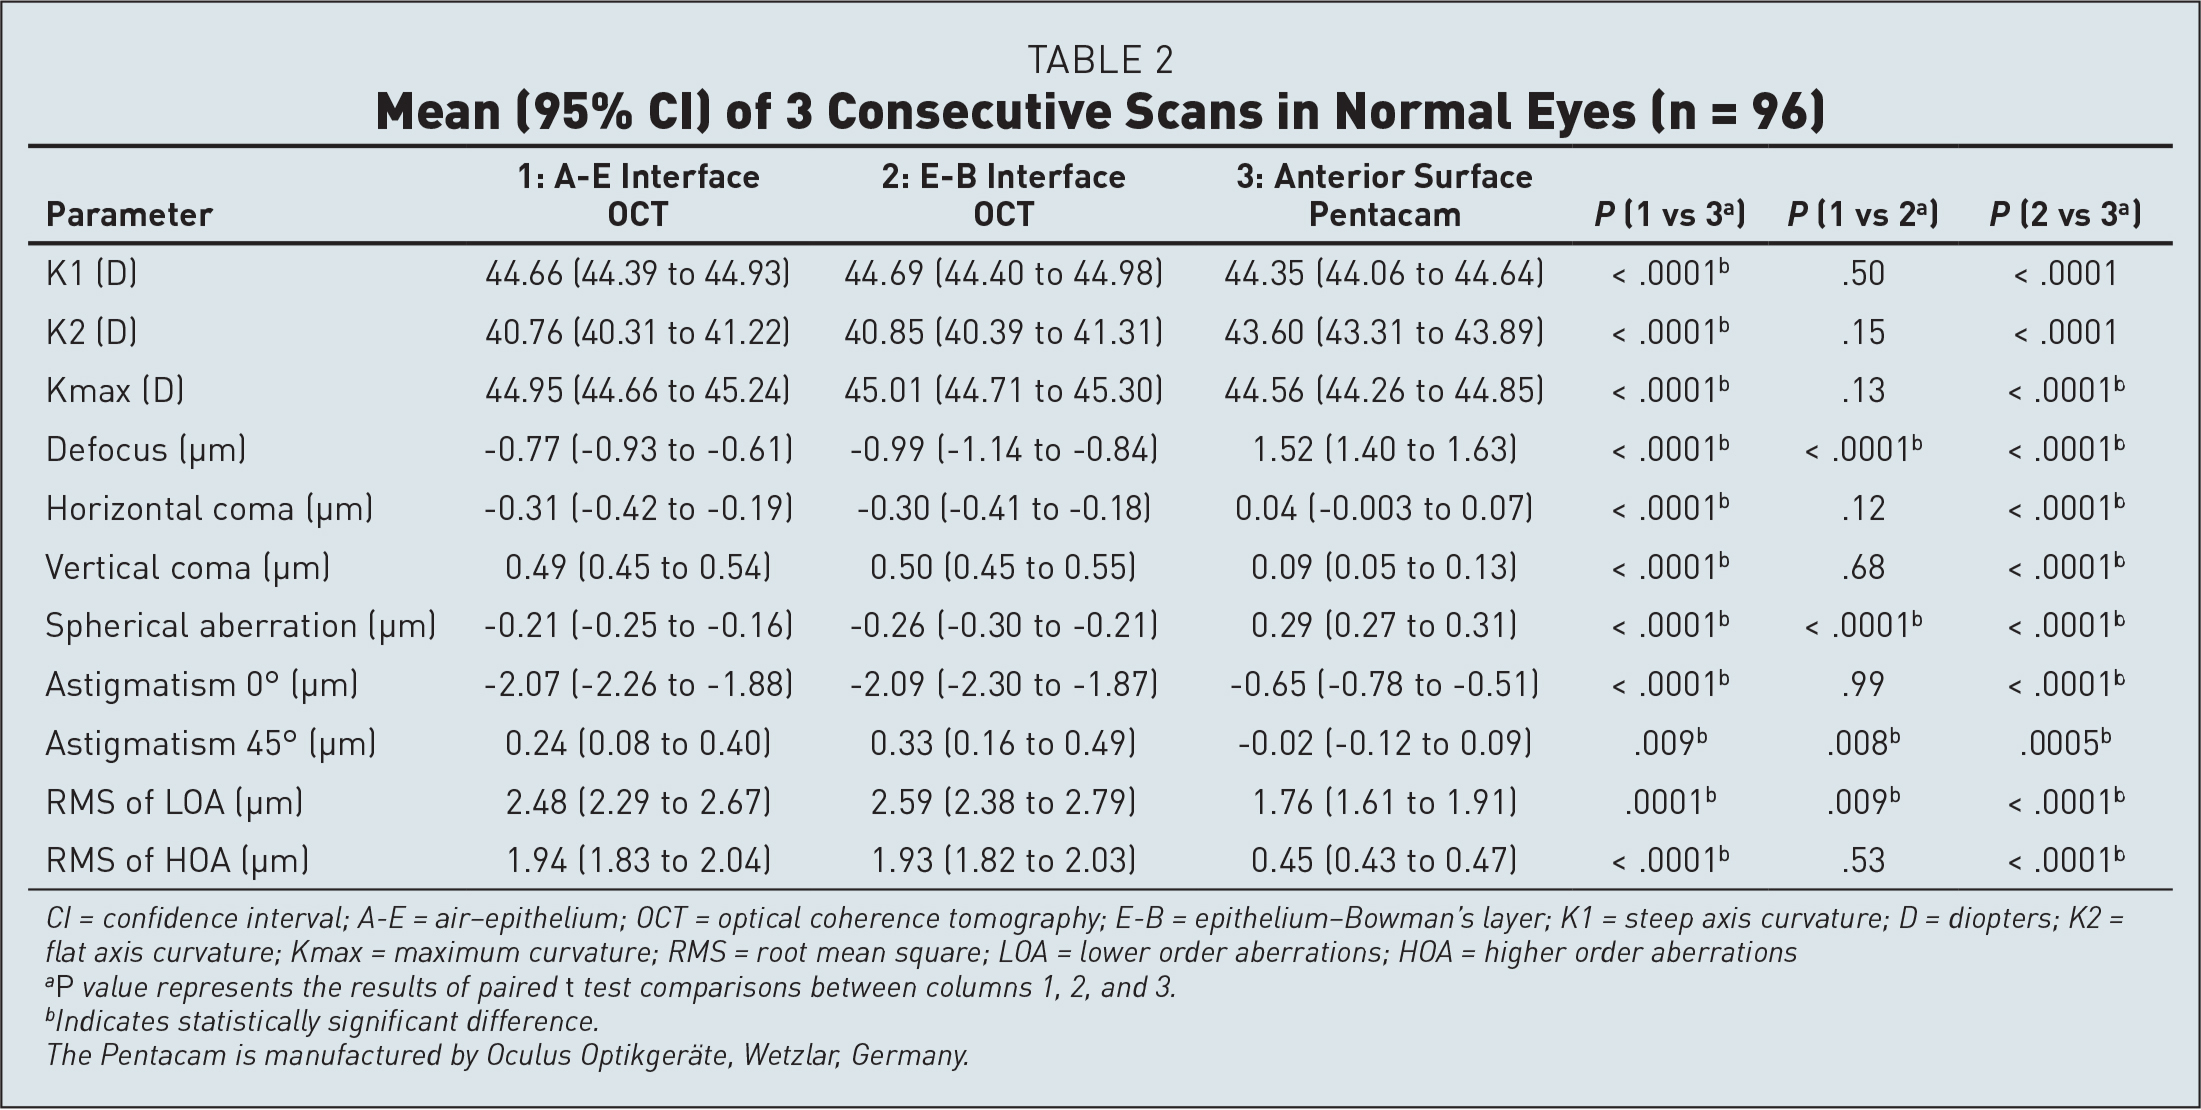 Mean (95% CI) of 3 Consecutive Scans in Normal Eyes (n = 96)